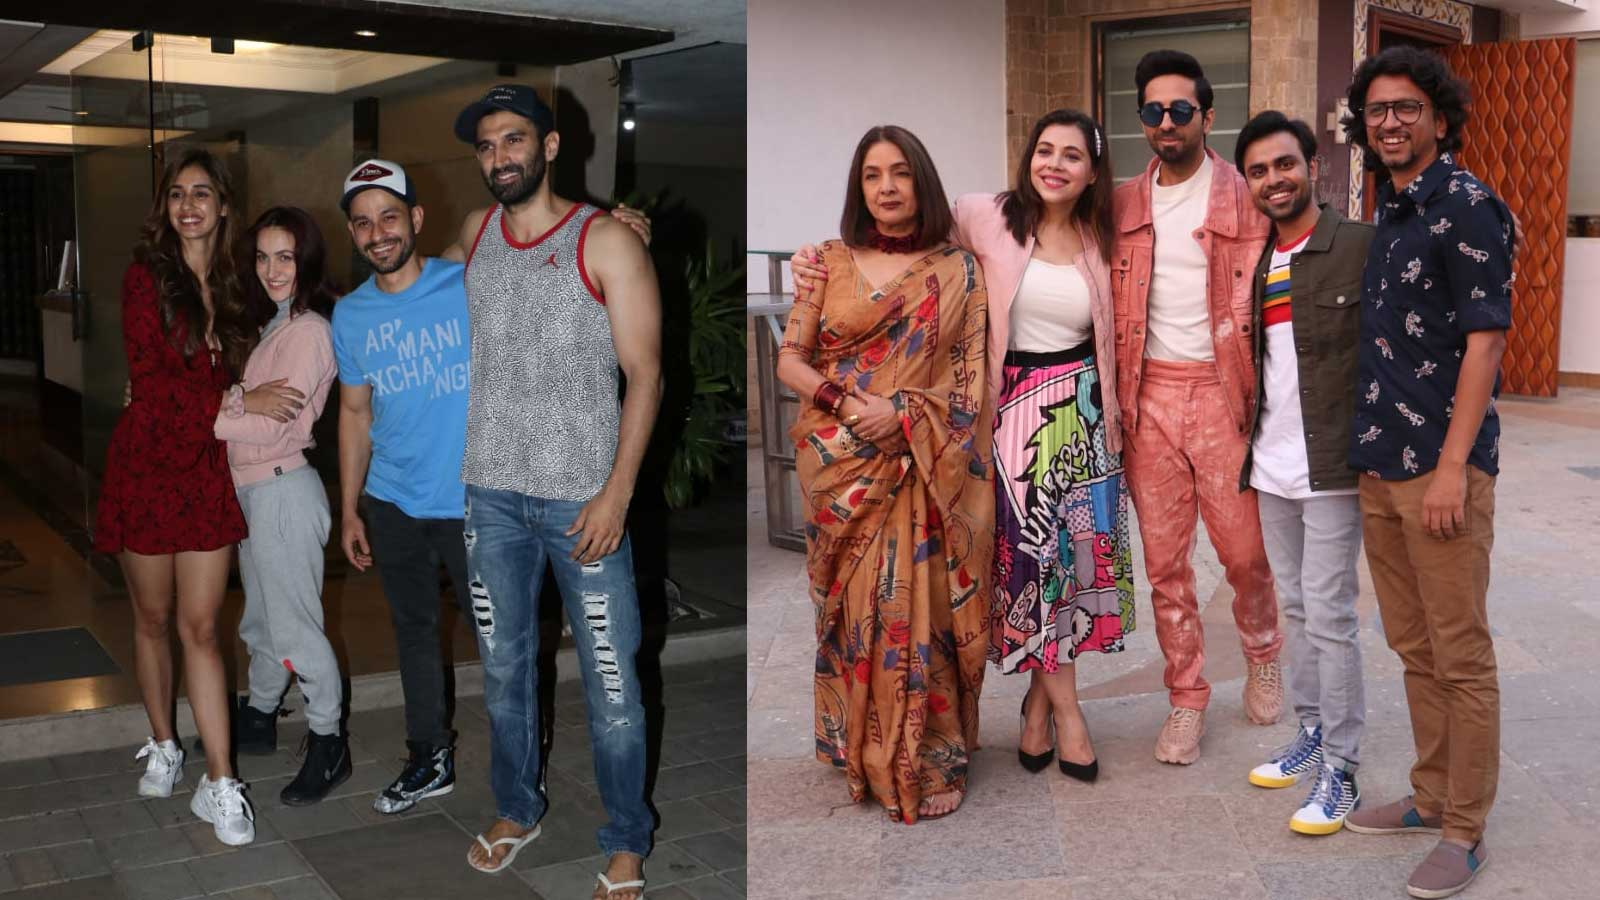 'Malang' along with 'Shubh Mangal Zyada Saavdhan' pose for perfect pictures